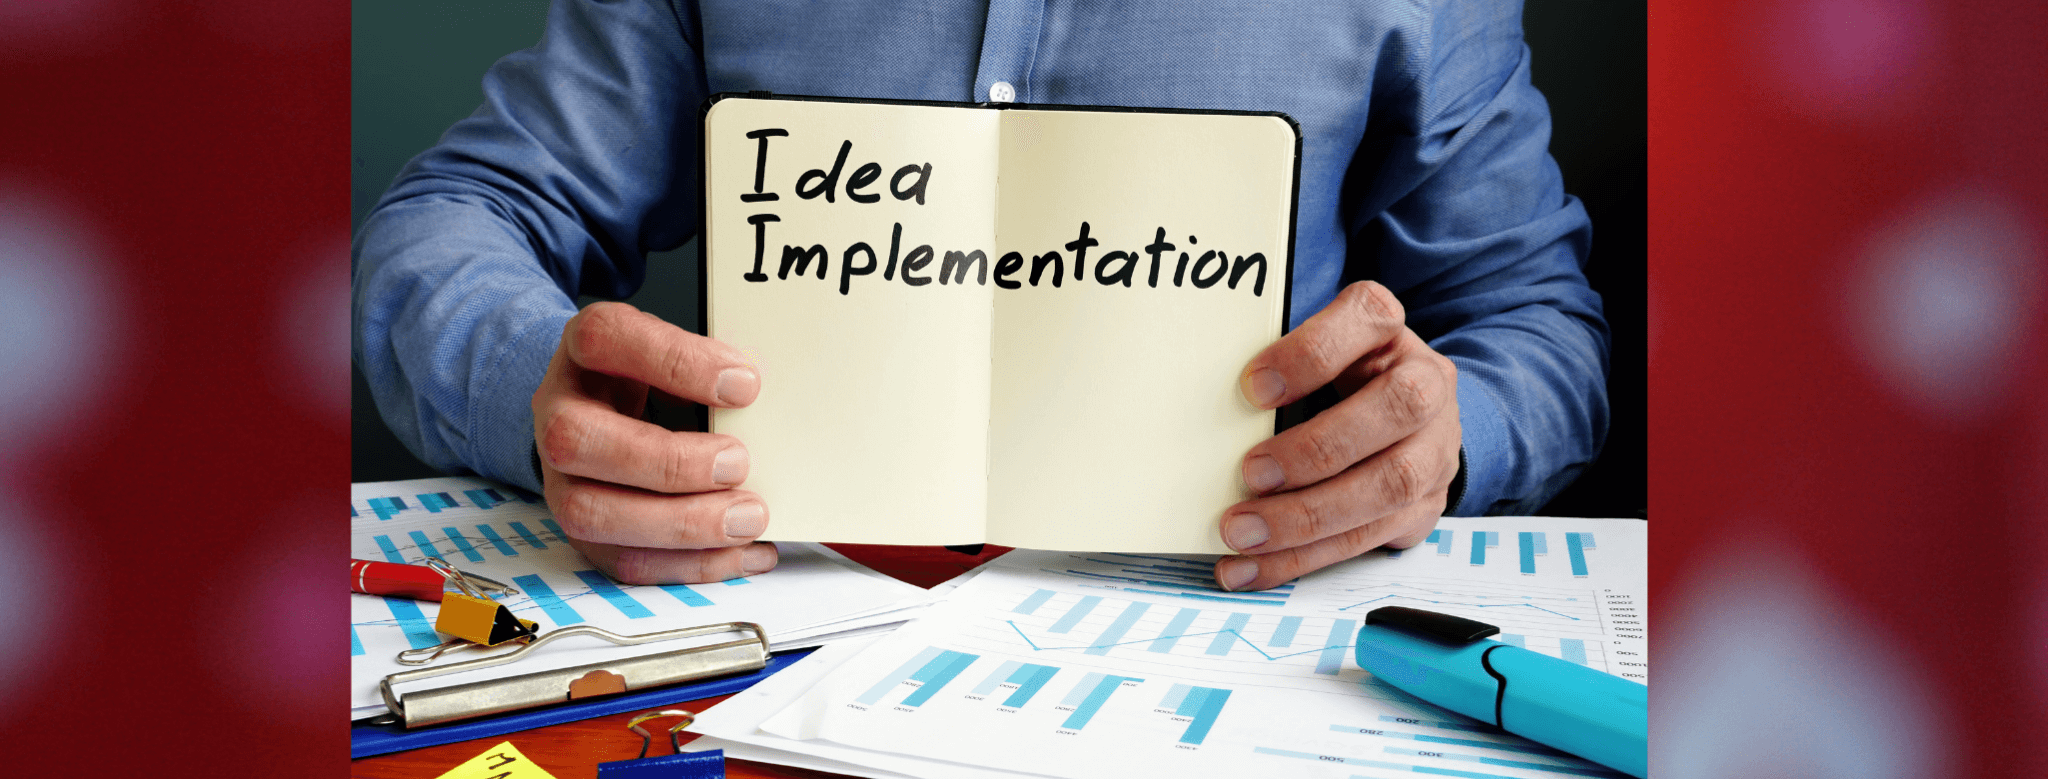 Ideas to implement